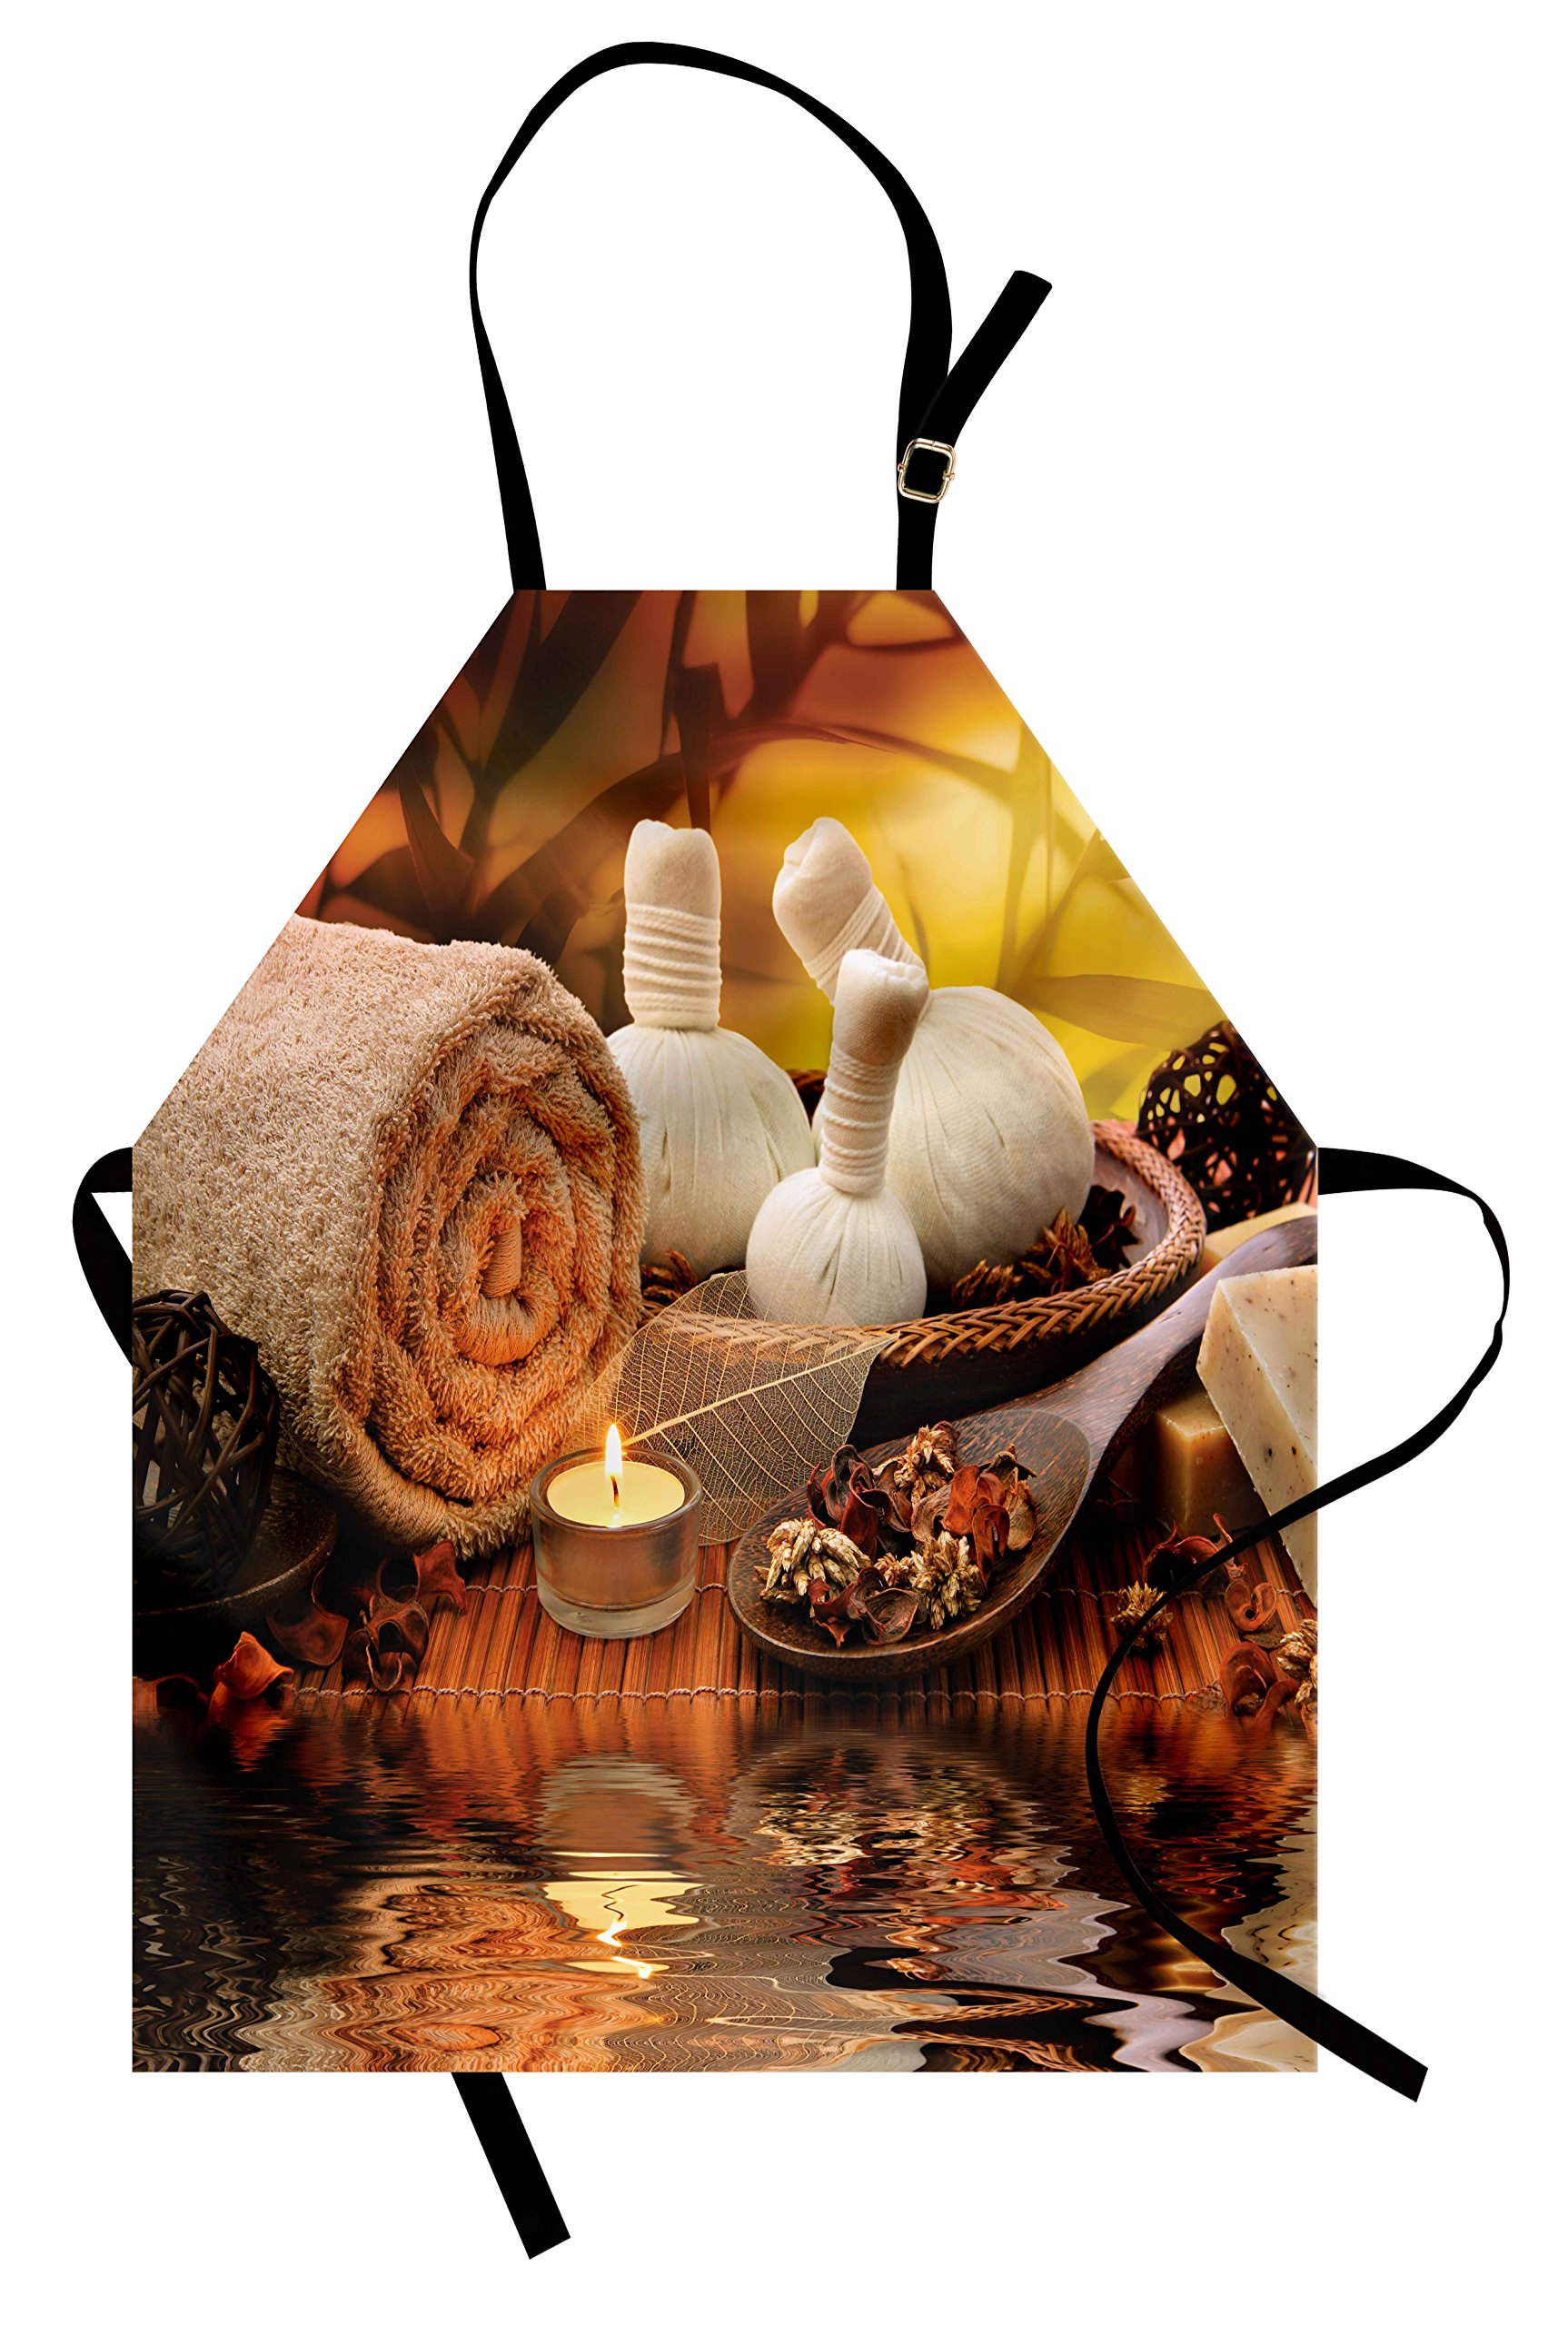 Lunarable Spa Apron, Outdoor Spa Massage Setting at Sunset with Candlelight Reflections Culture Theme, Unisex Kitchen Bib Apron with Adjustable Neck for Cooking Baking Gardening, Orange Mustard